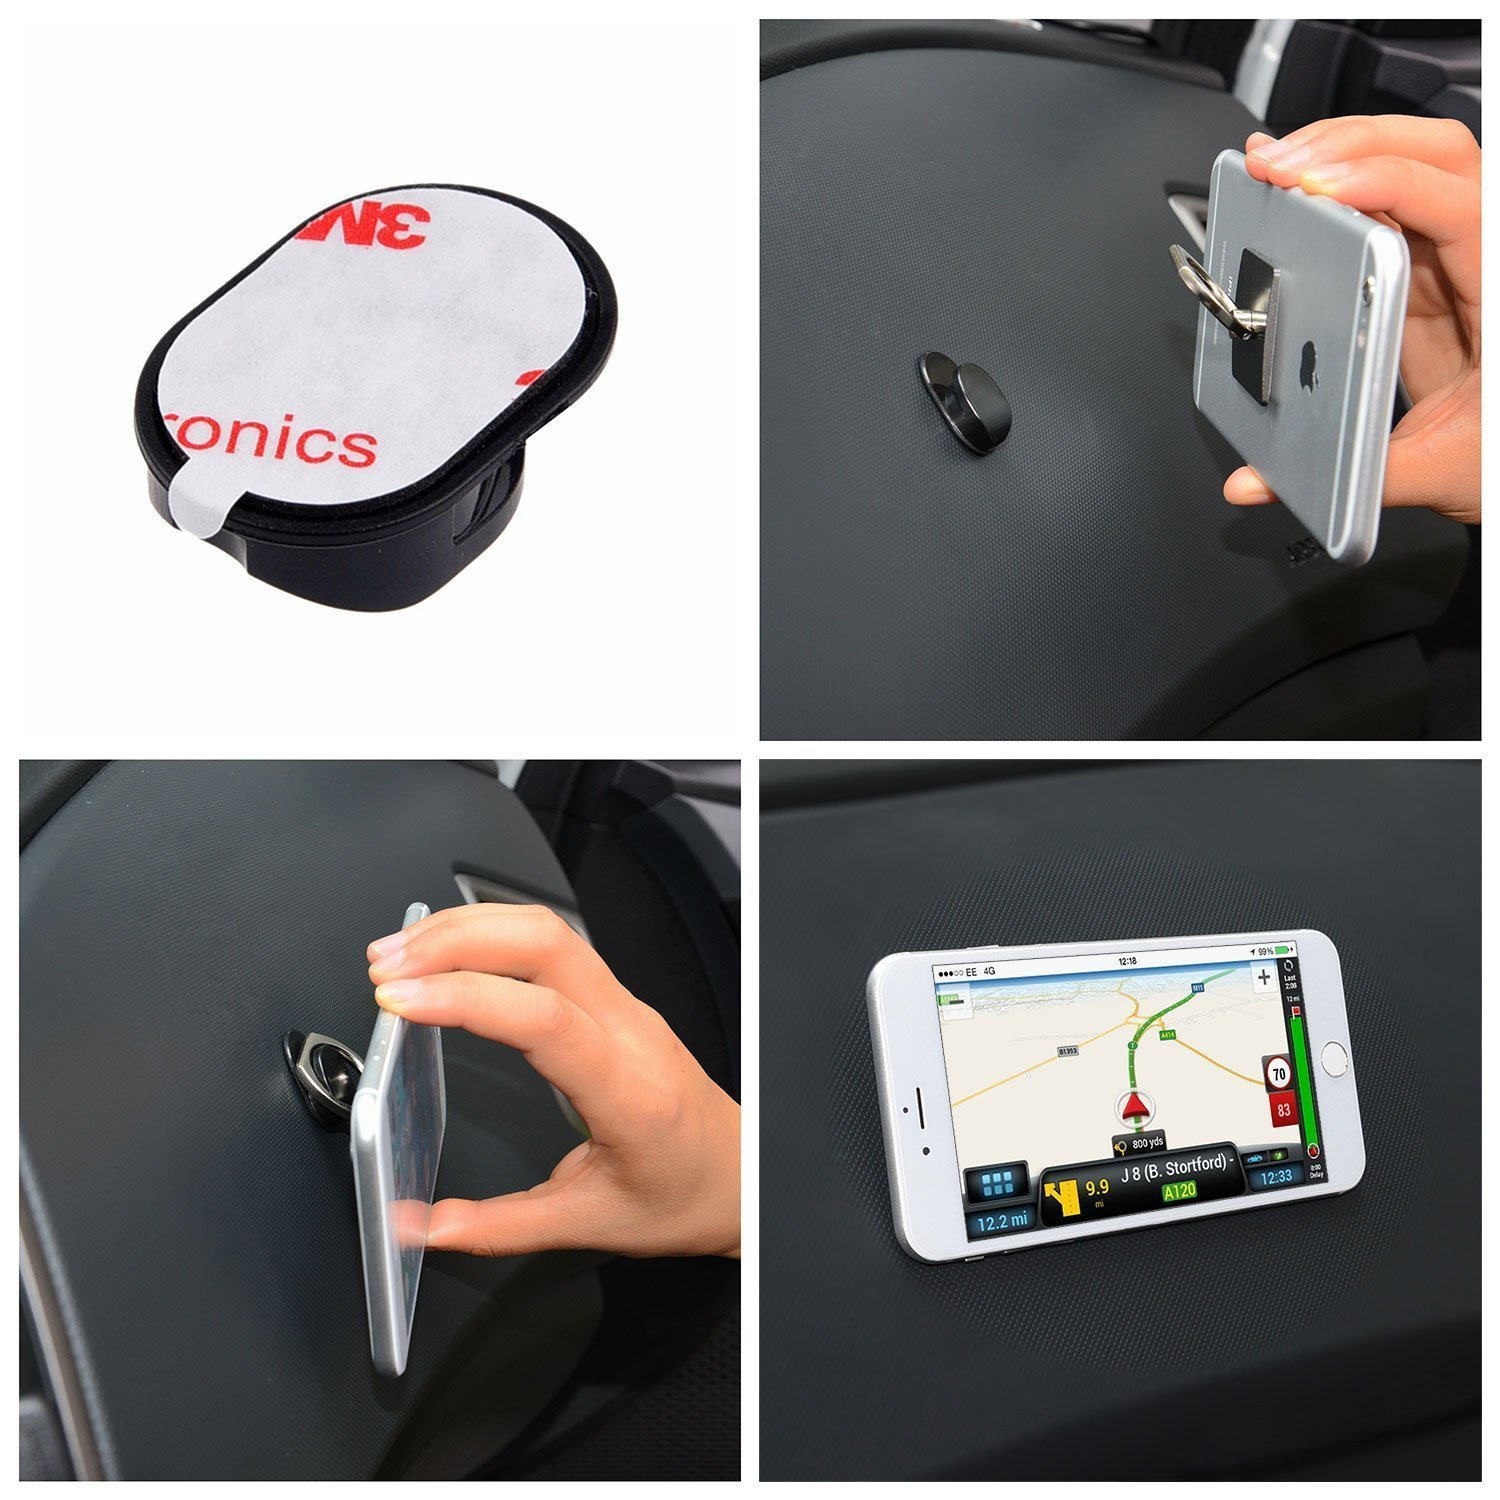 Phone Ring Grip & Stand - 2in1 - 2 Pieces, with Car Mount - For all Phones/Tablets with a Flat Rear Surface - 360 Rotate - Never Drop Your by Trenro (Image #6)